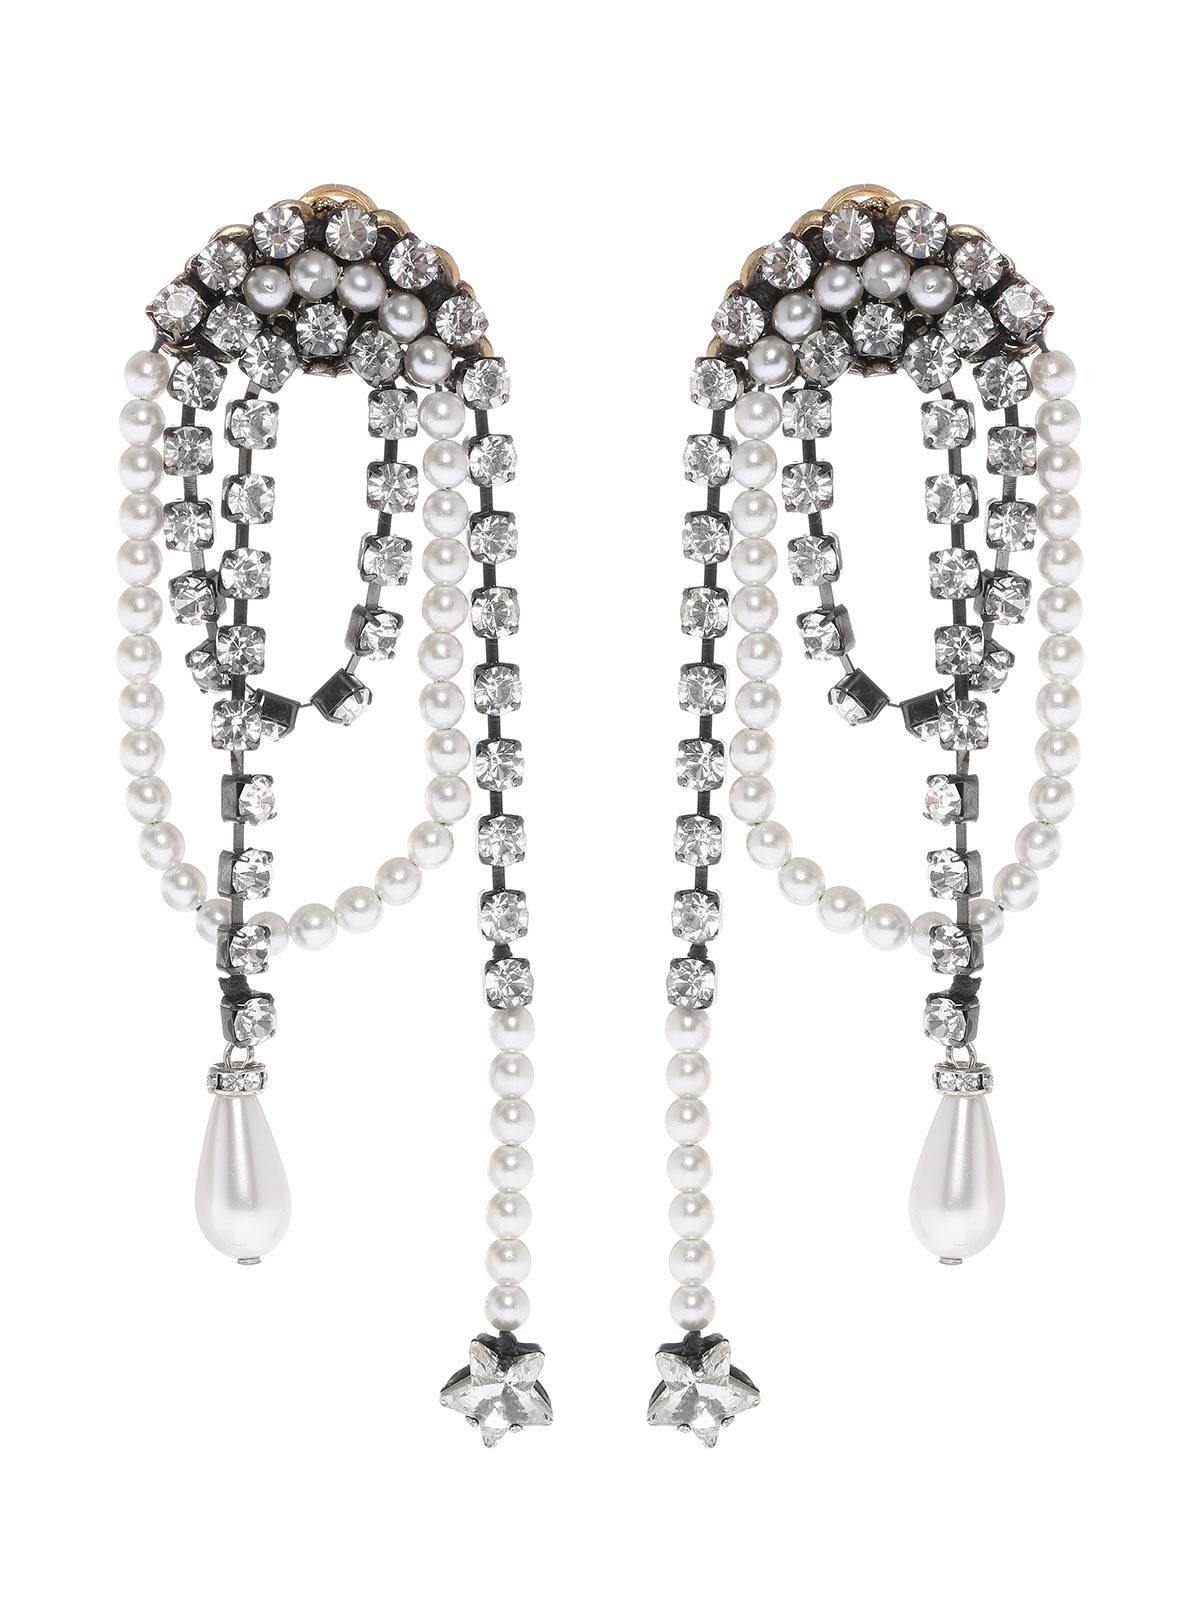 Pendant earrings with crystal and beads